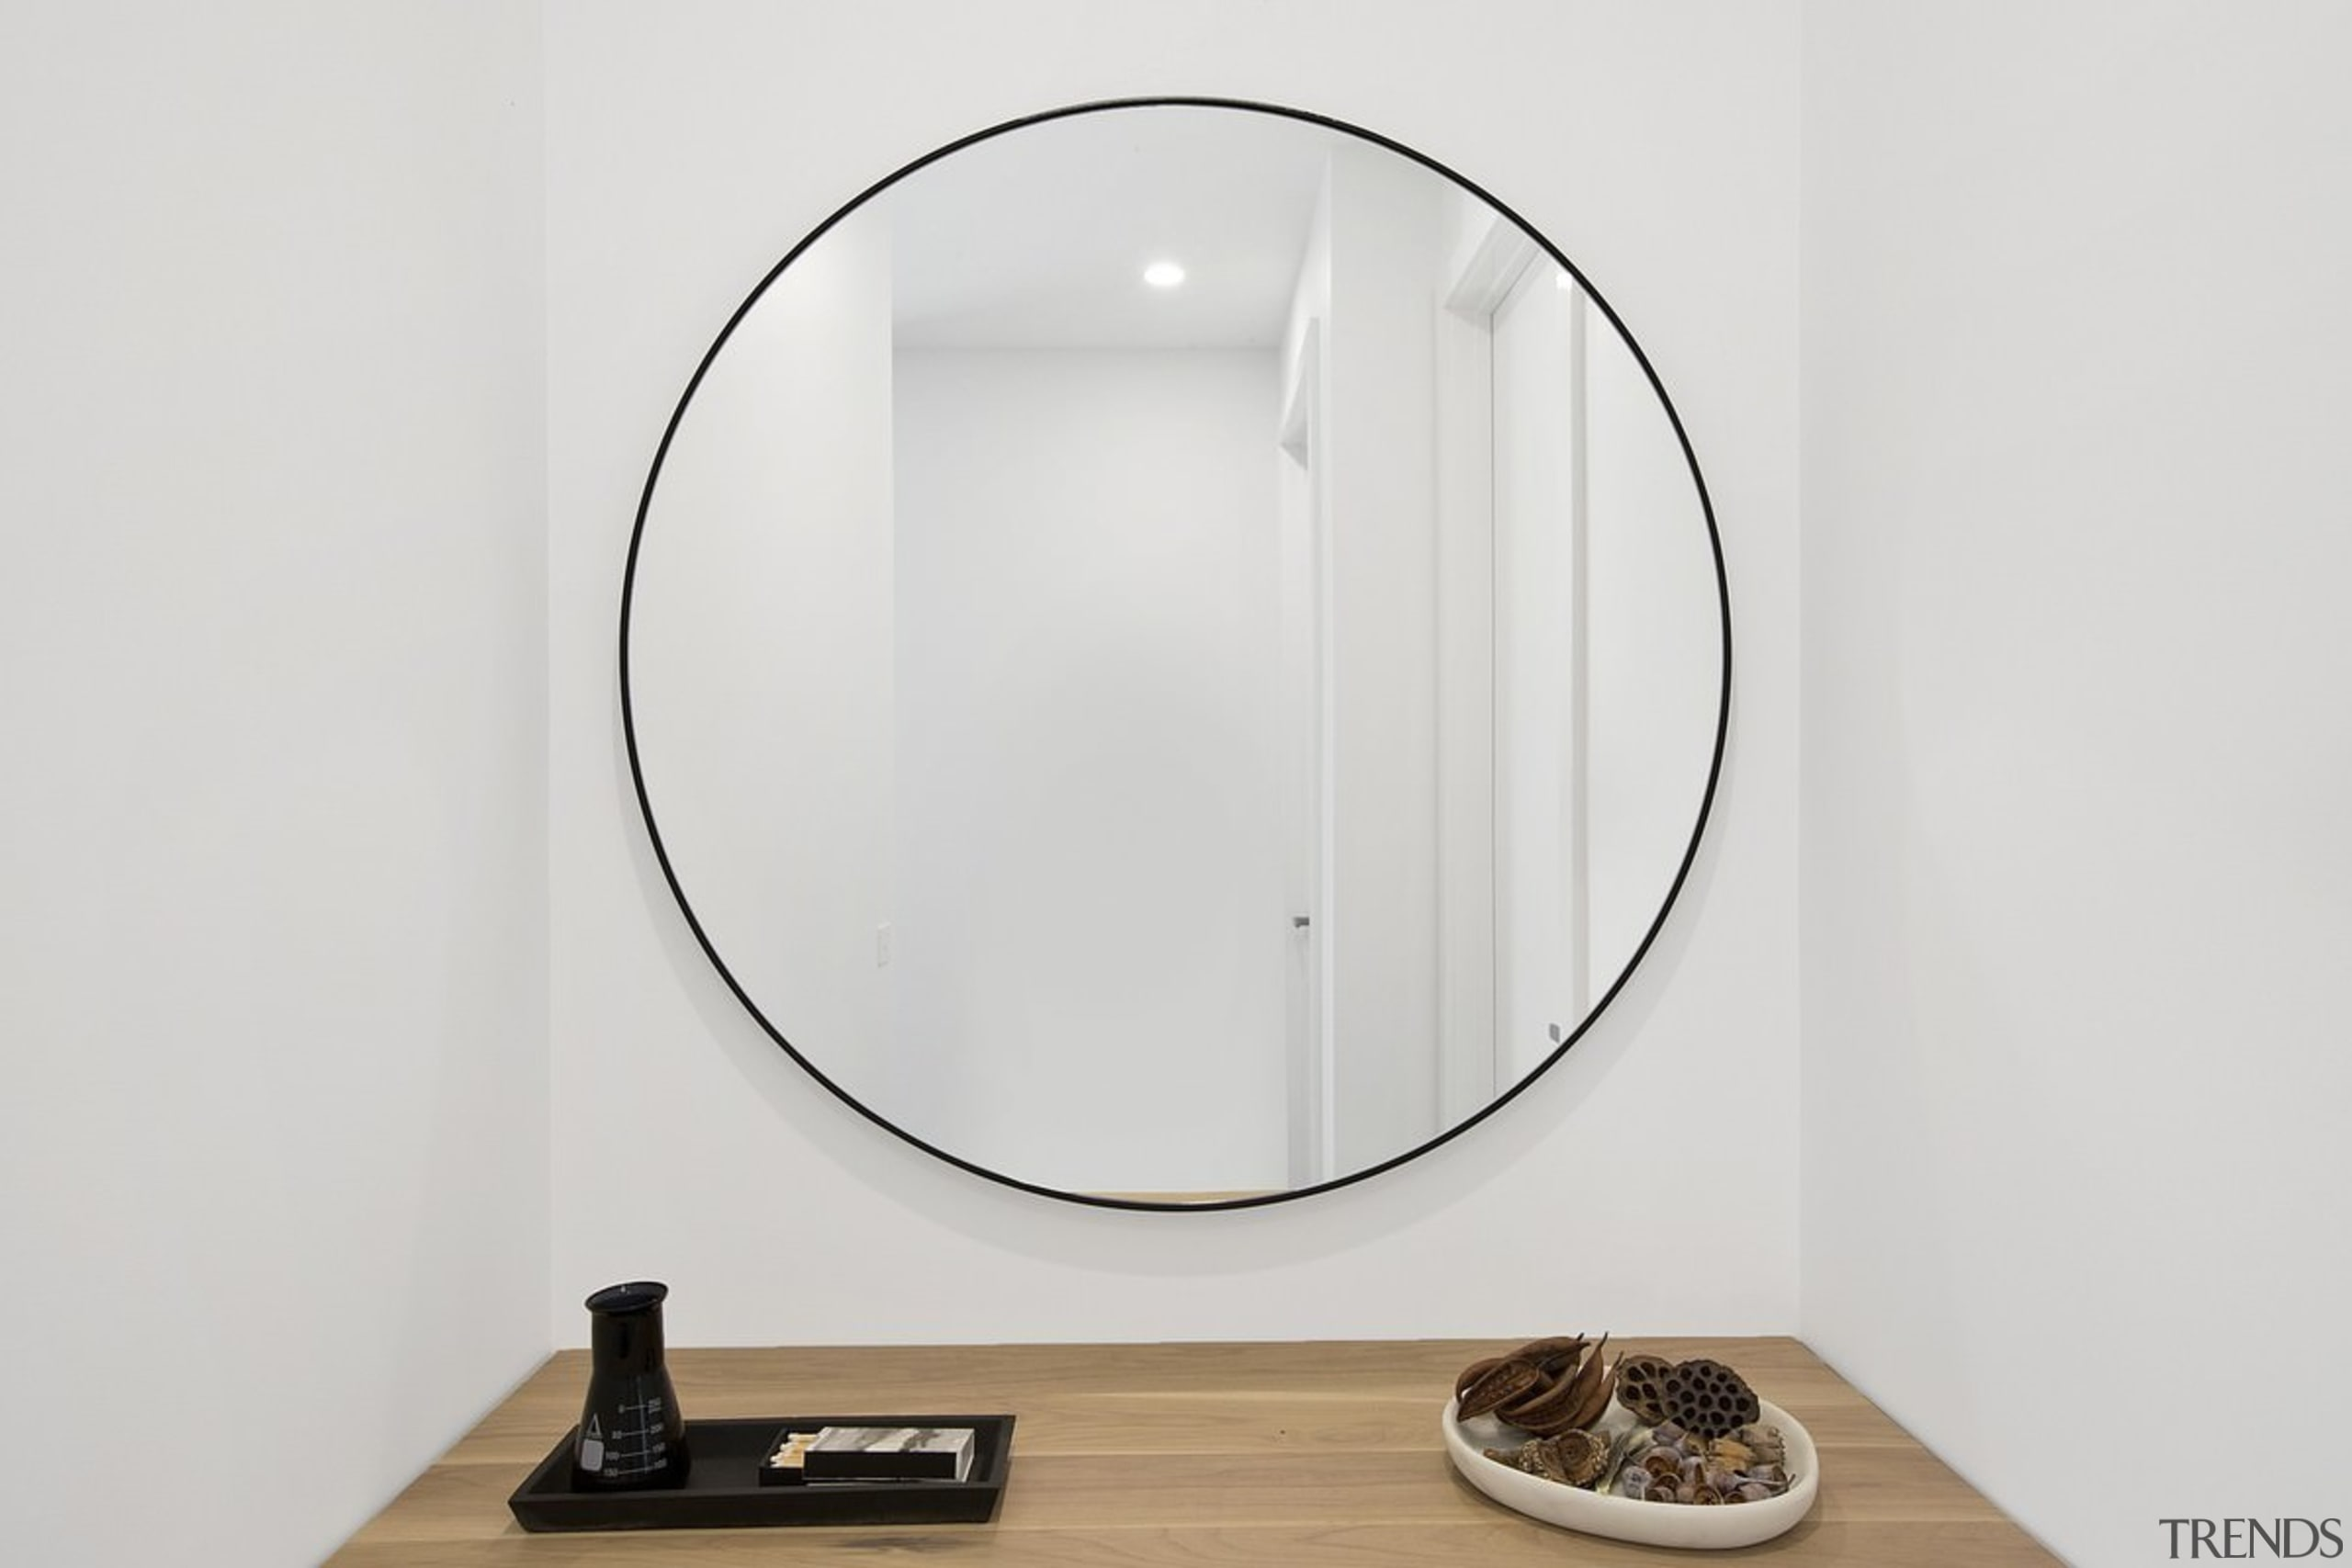 A large circular mirror provides a focal point product design, white